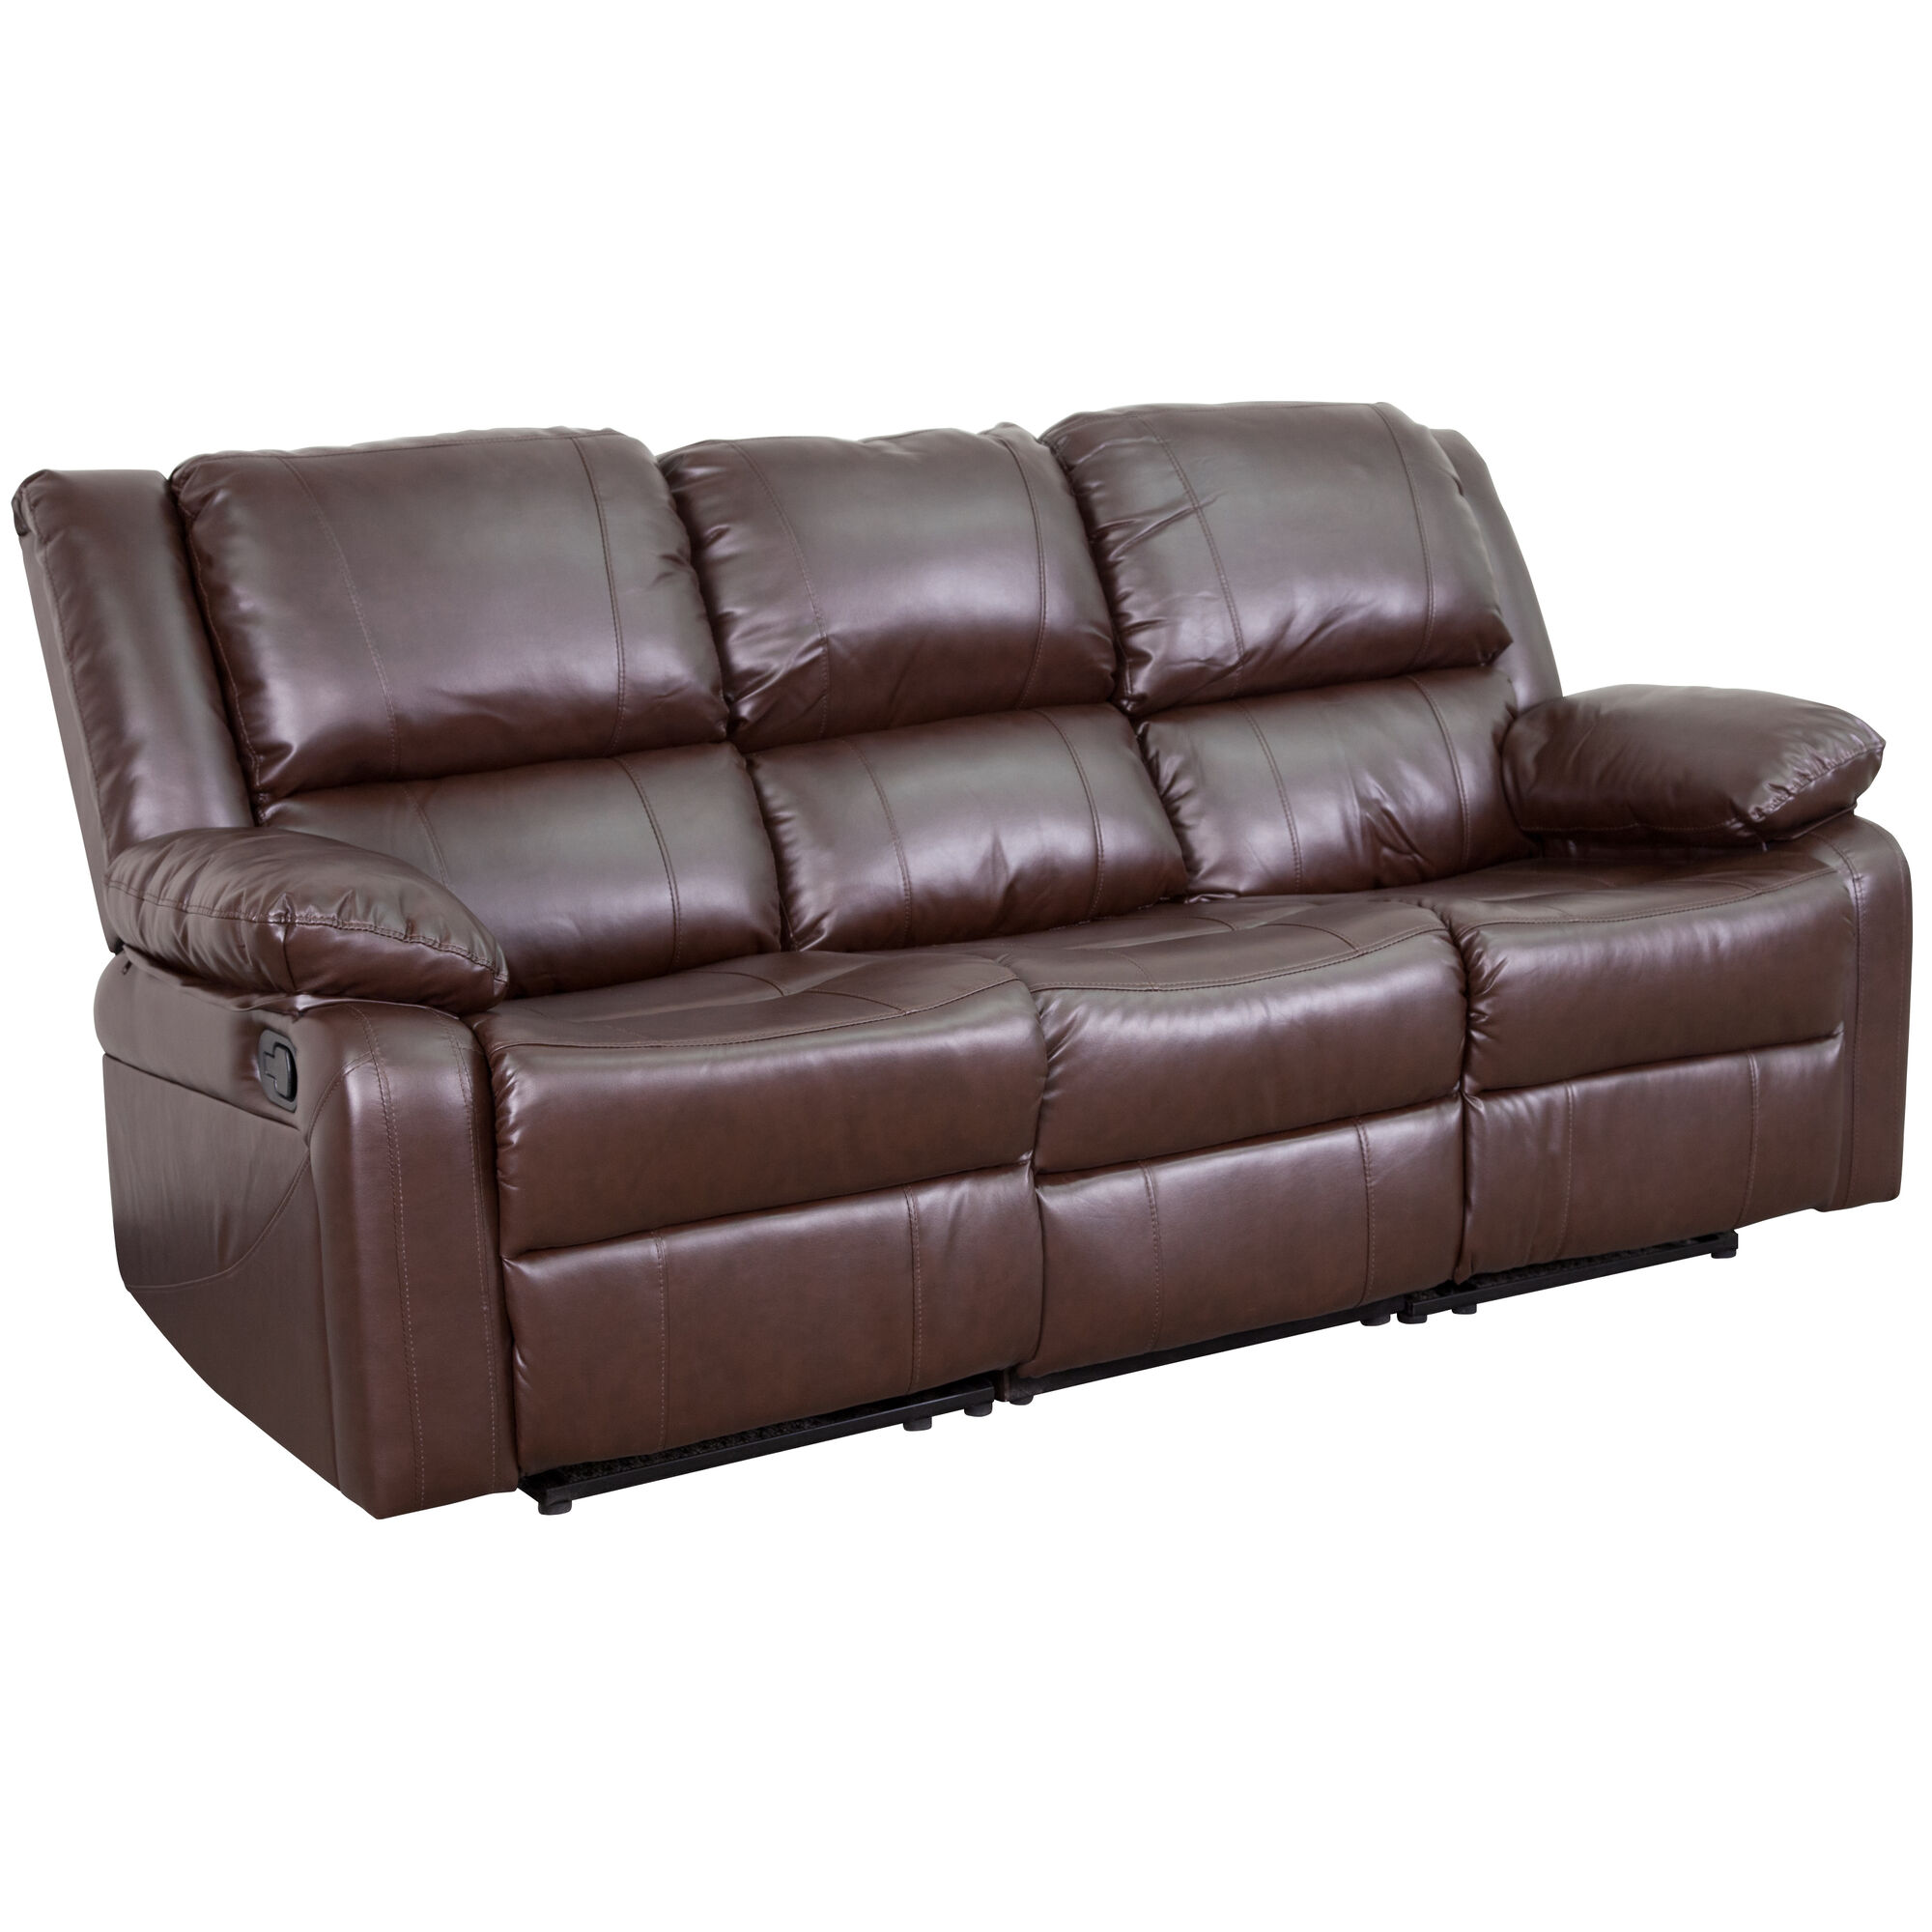 Phenomenal Harmony Series Brown Leather Sofa With Two Built In Recliners Short Links Chair Design For Home Short Linksinfo